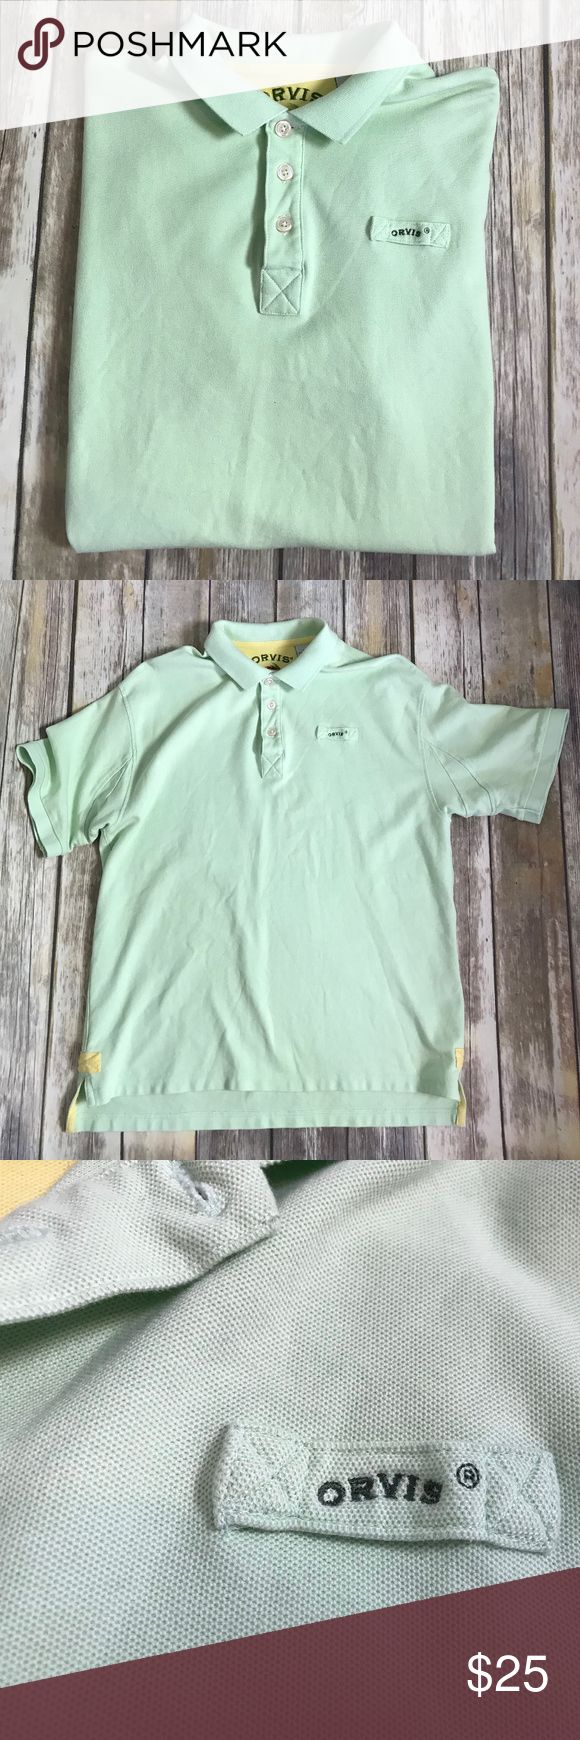 Orvis Spell Out Mens Polo Shirt Green Size Large L Orvis Men's Short Sleeve Polo Shirt w/ Spell Out - Green - Size Large L - EUC  Excellent pre-owned condition! No flaws. Item has been cleaned and is stored in a smoke free environment.   Approximate Measurements: Bust (measured pit to pit): 22.5 inches  Length of garment: 30 inches  B14_2017.11.18 Orvis Shirts Polos